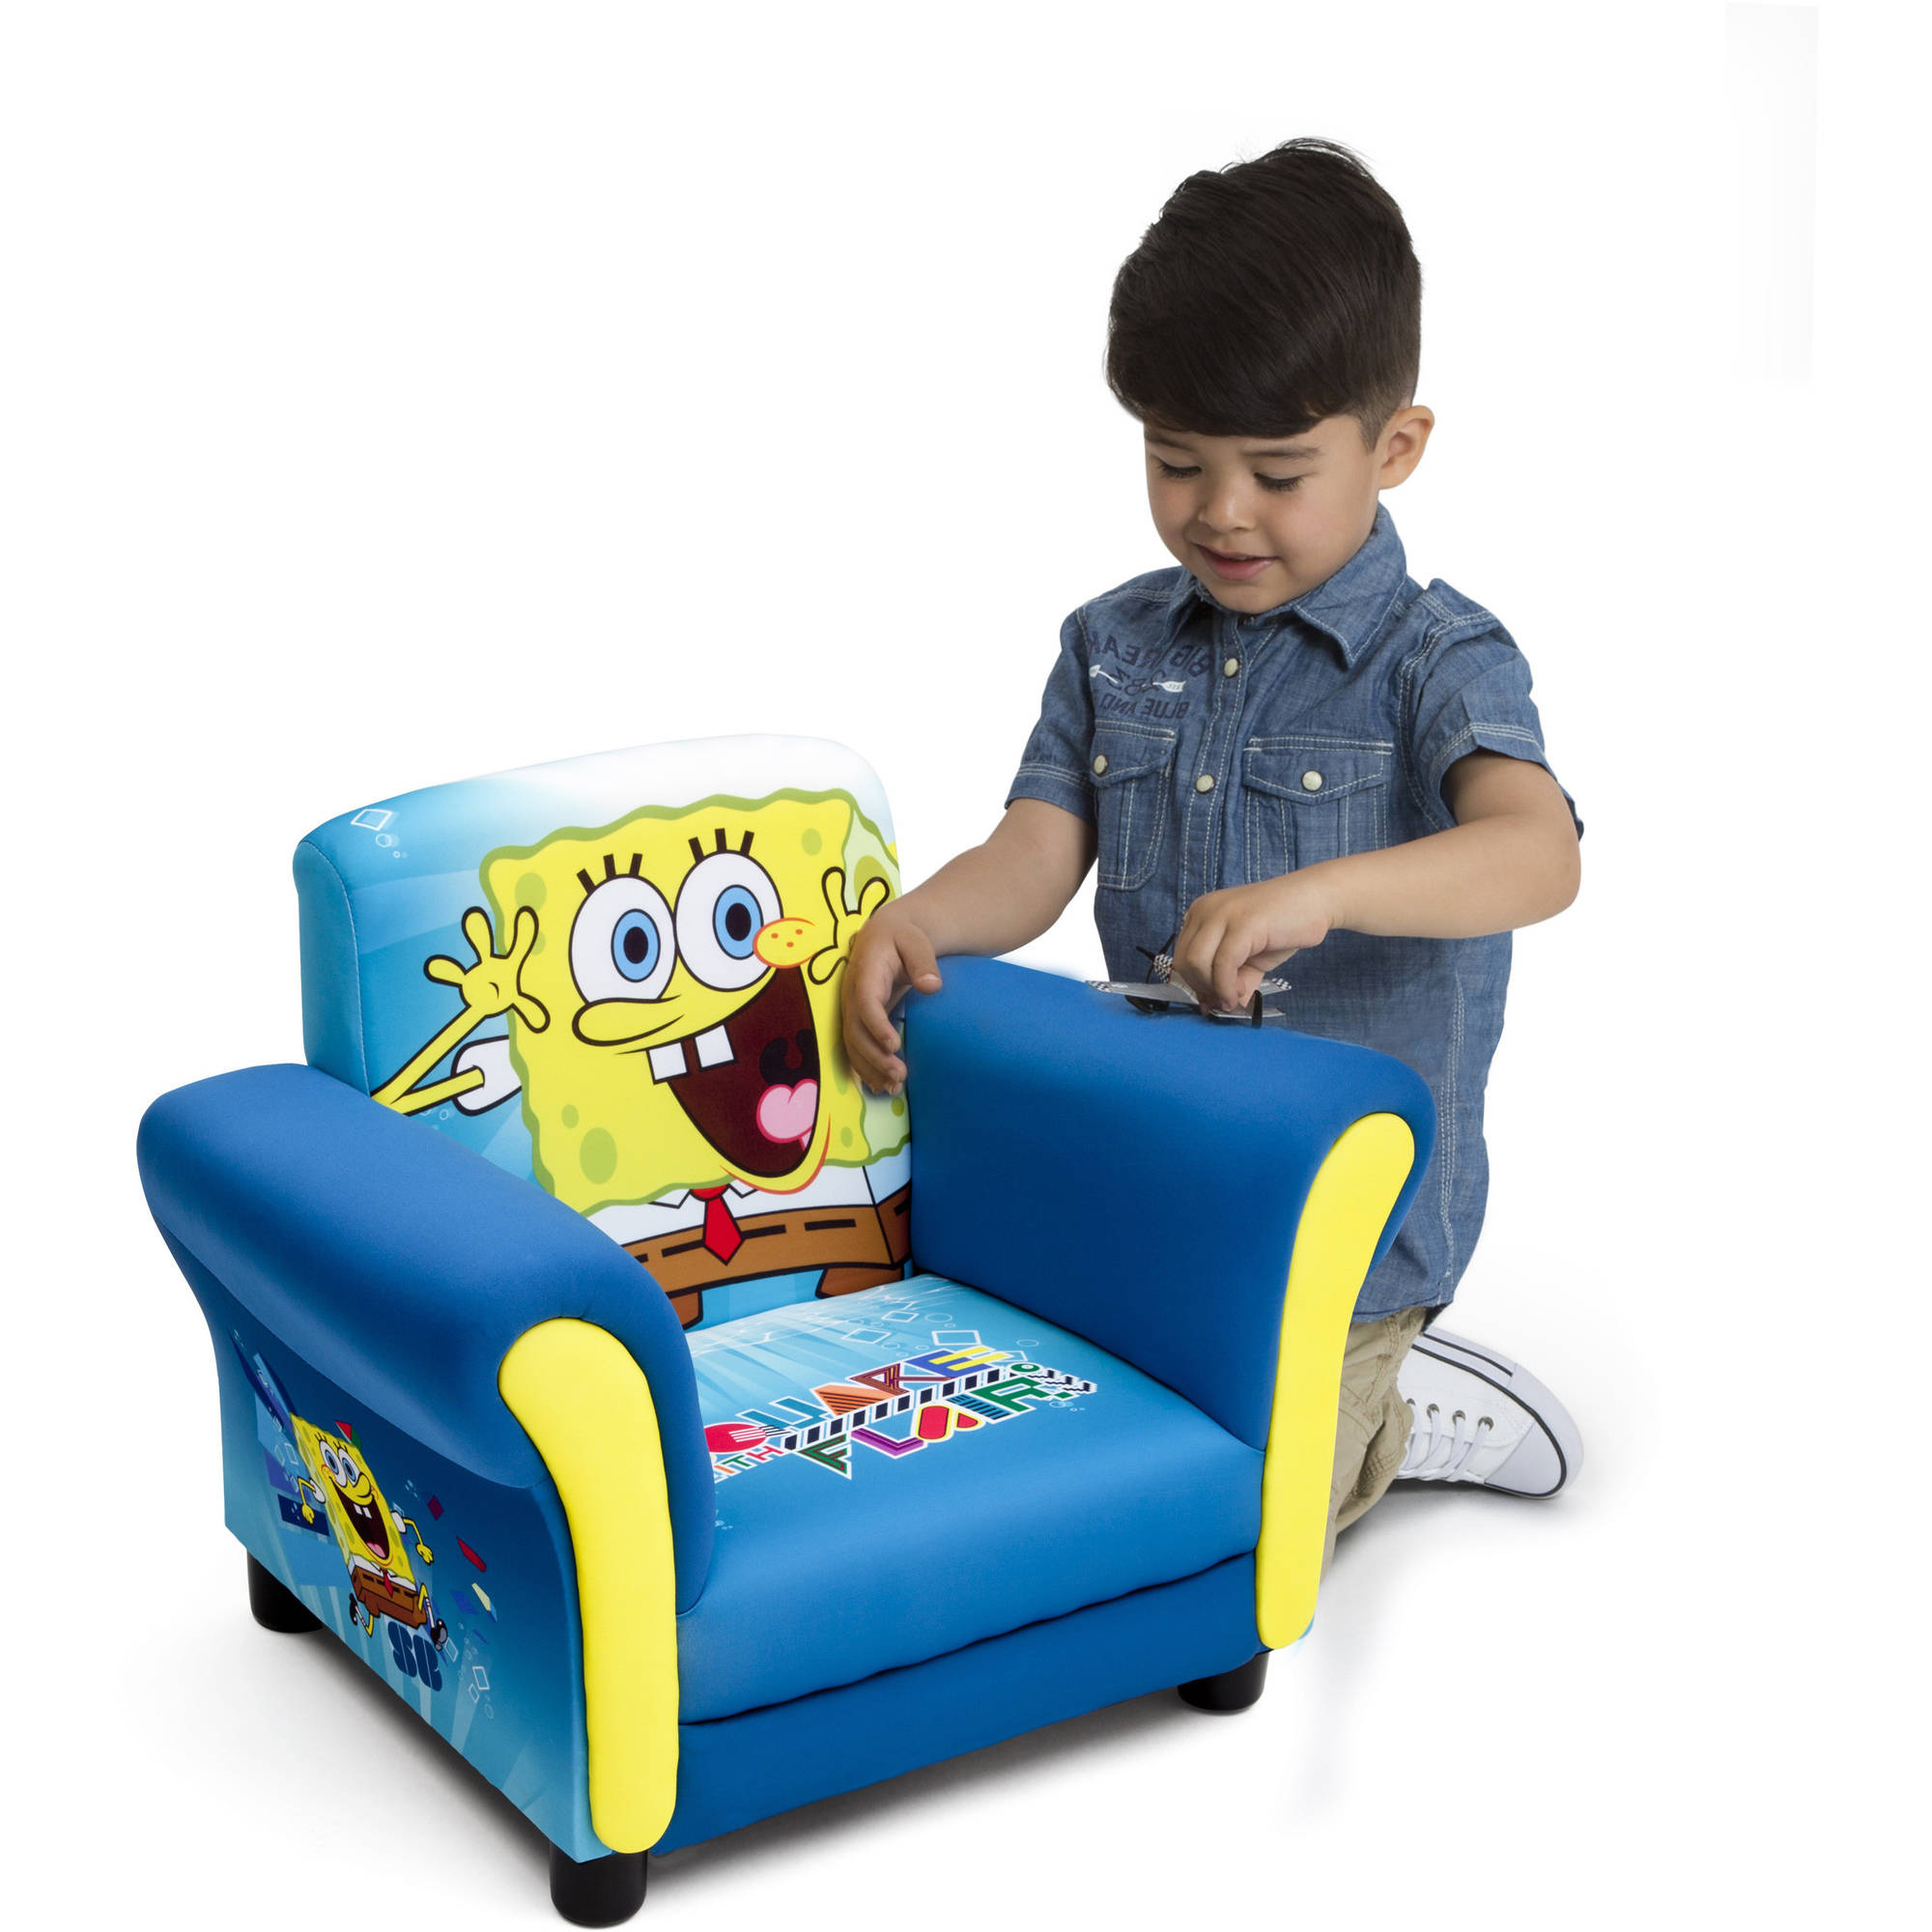 Delta Children Chair Details About Spongebob Squarepants Kids Upholstered Chair By Delta Children